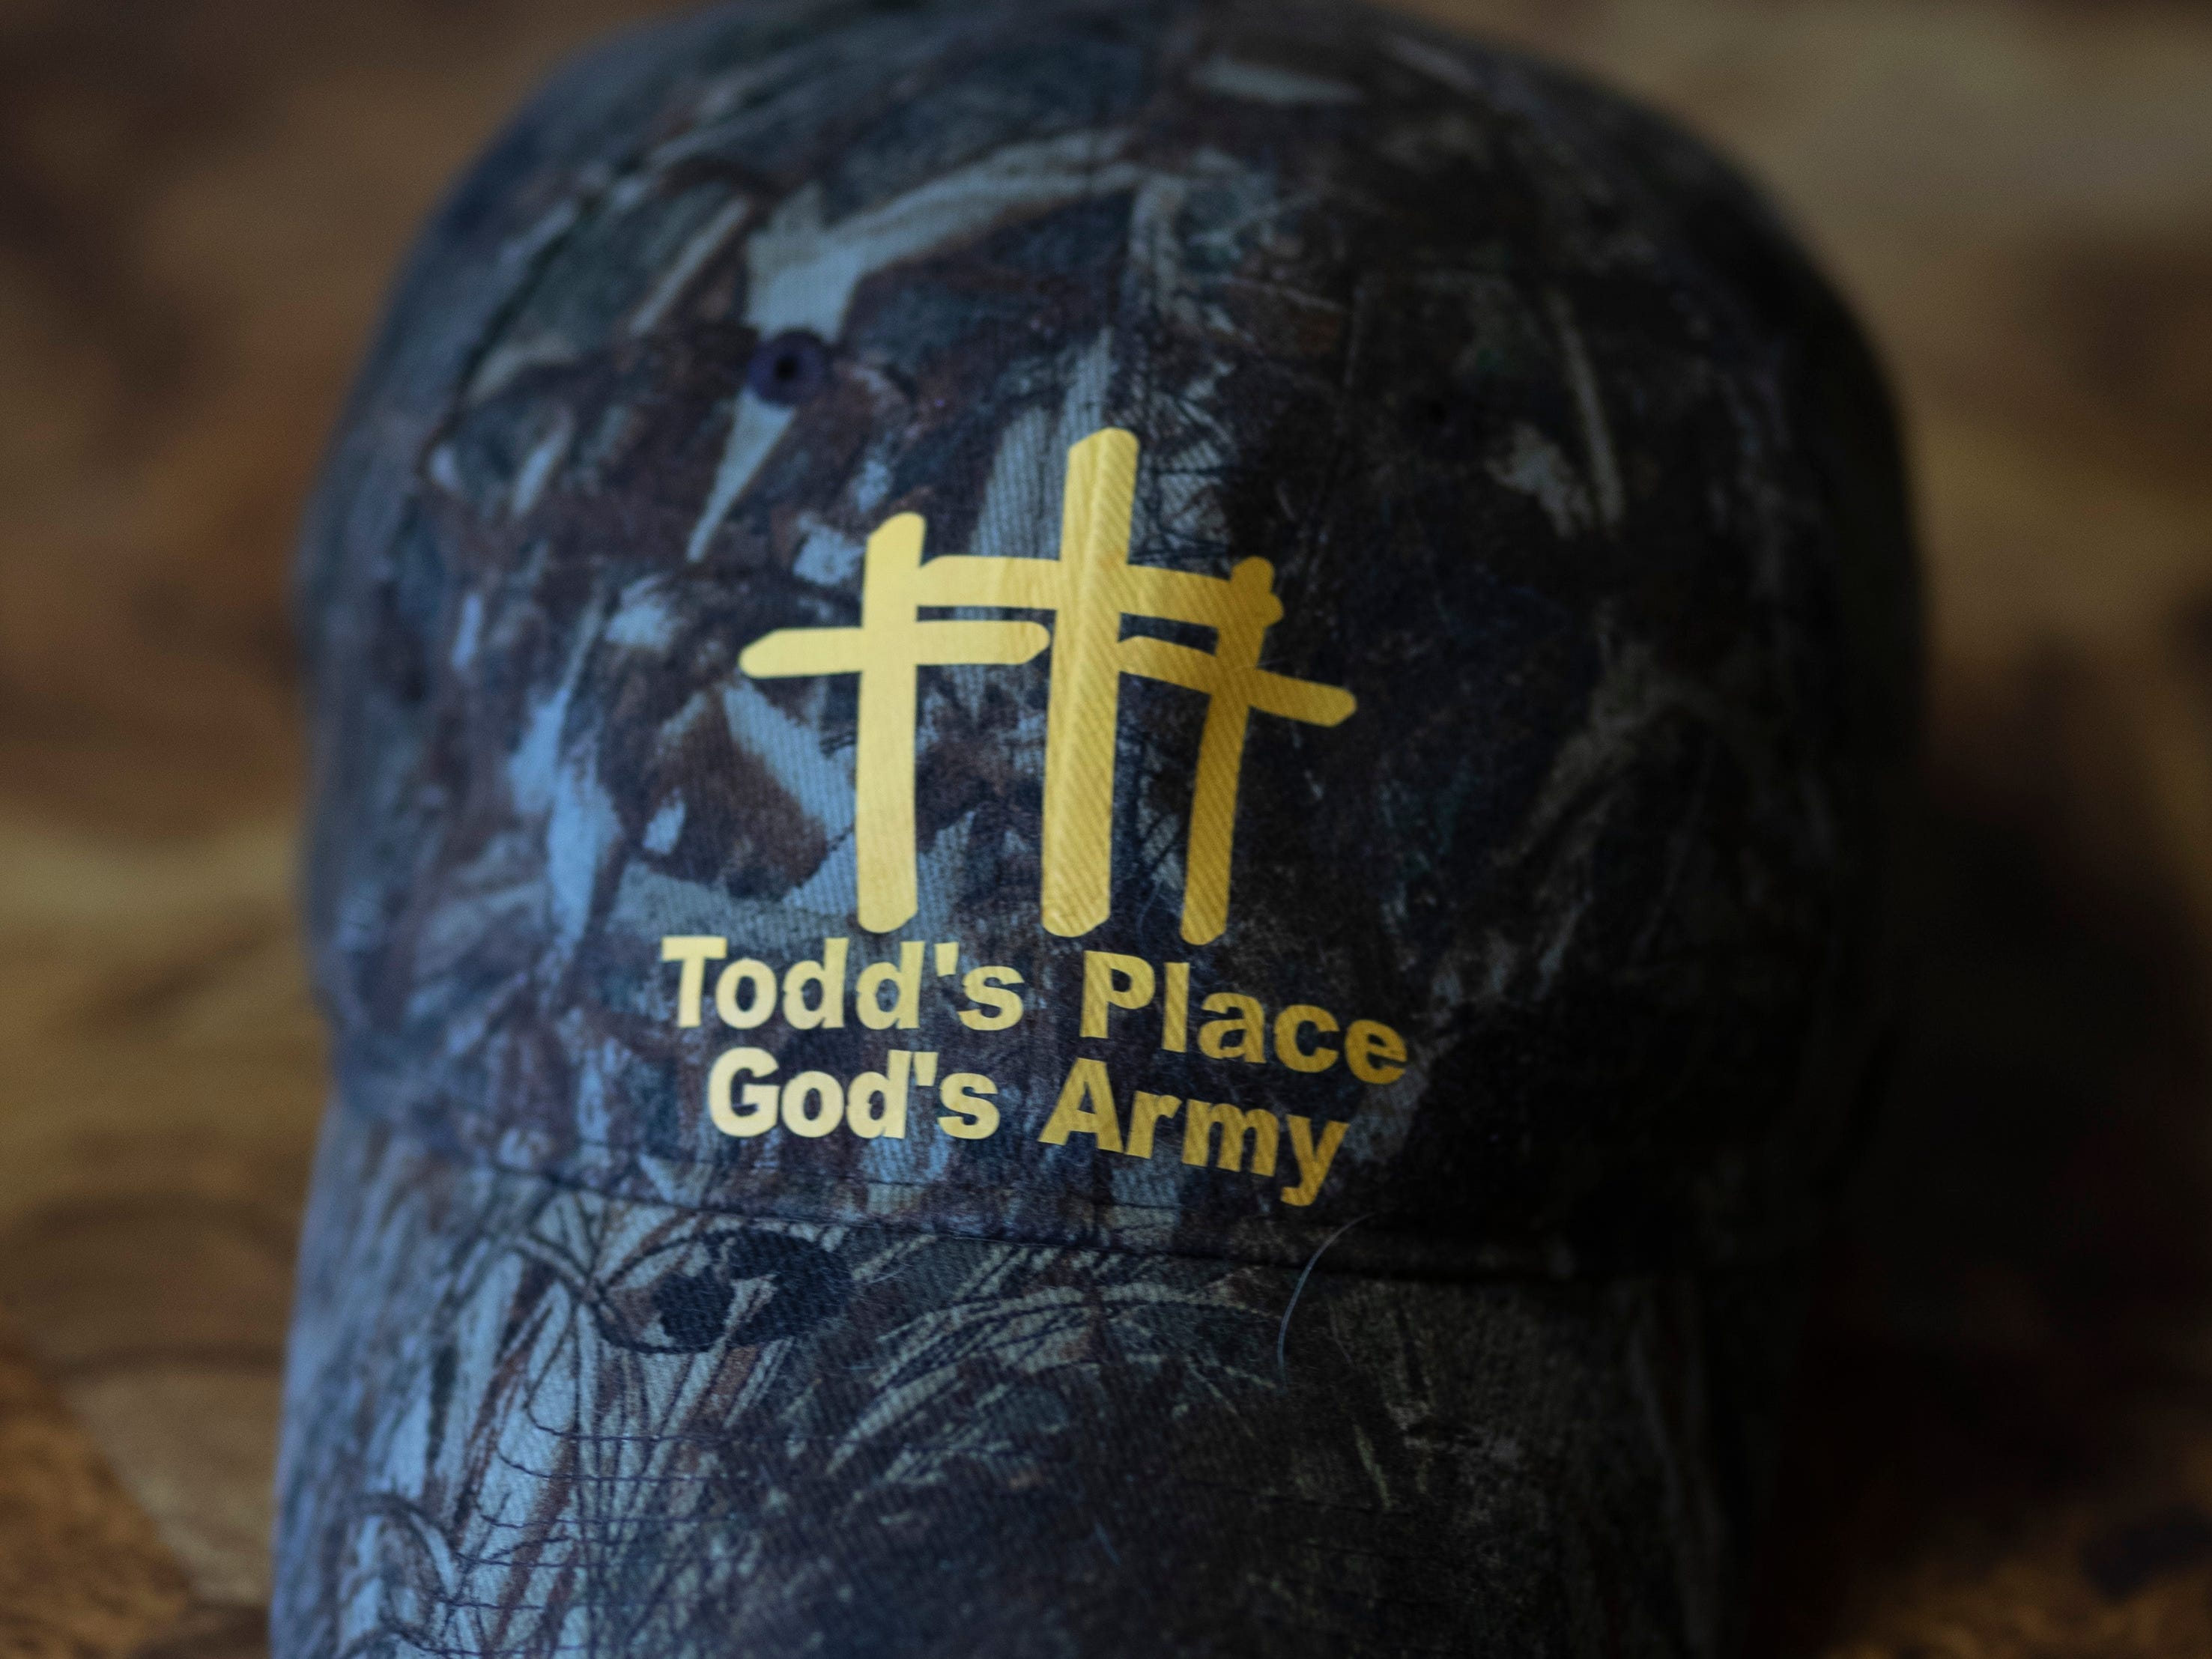 A Todd's Place Transitional Housing hat sits on a table inside the recovery center in Seymour, Indiana. Dec. 2, 2018